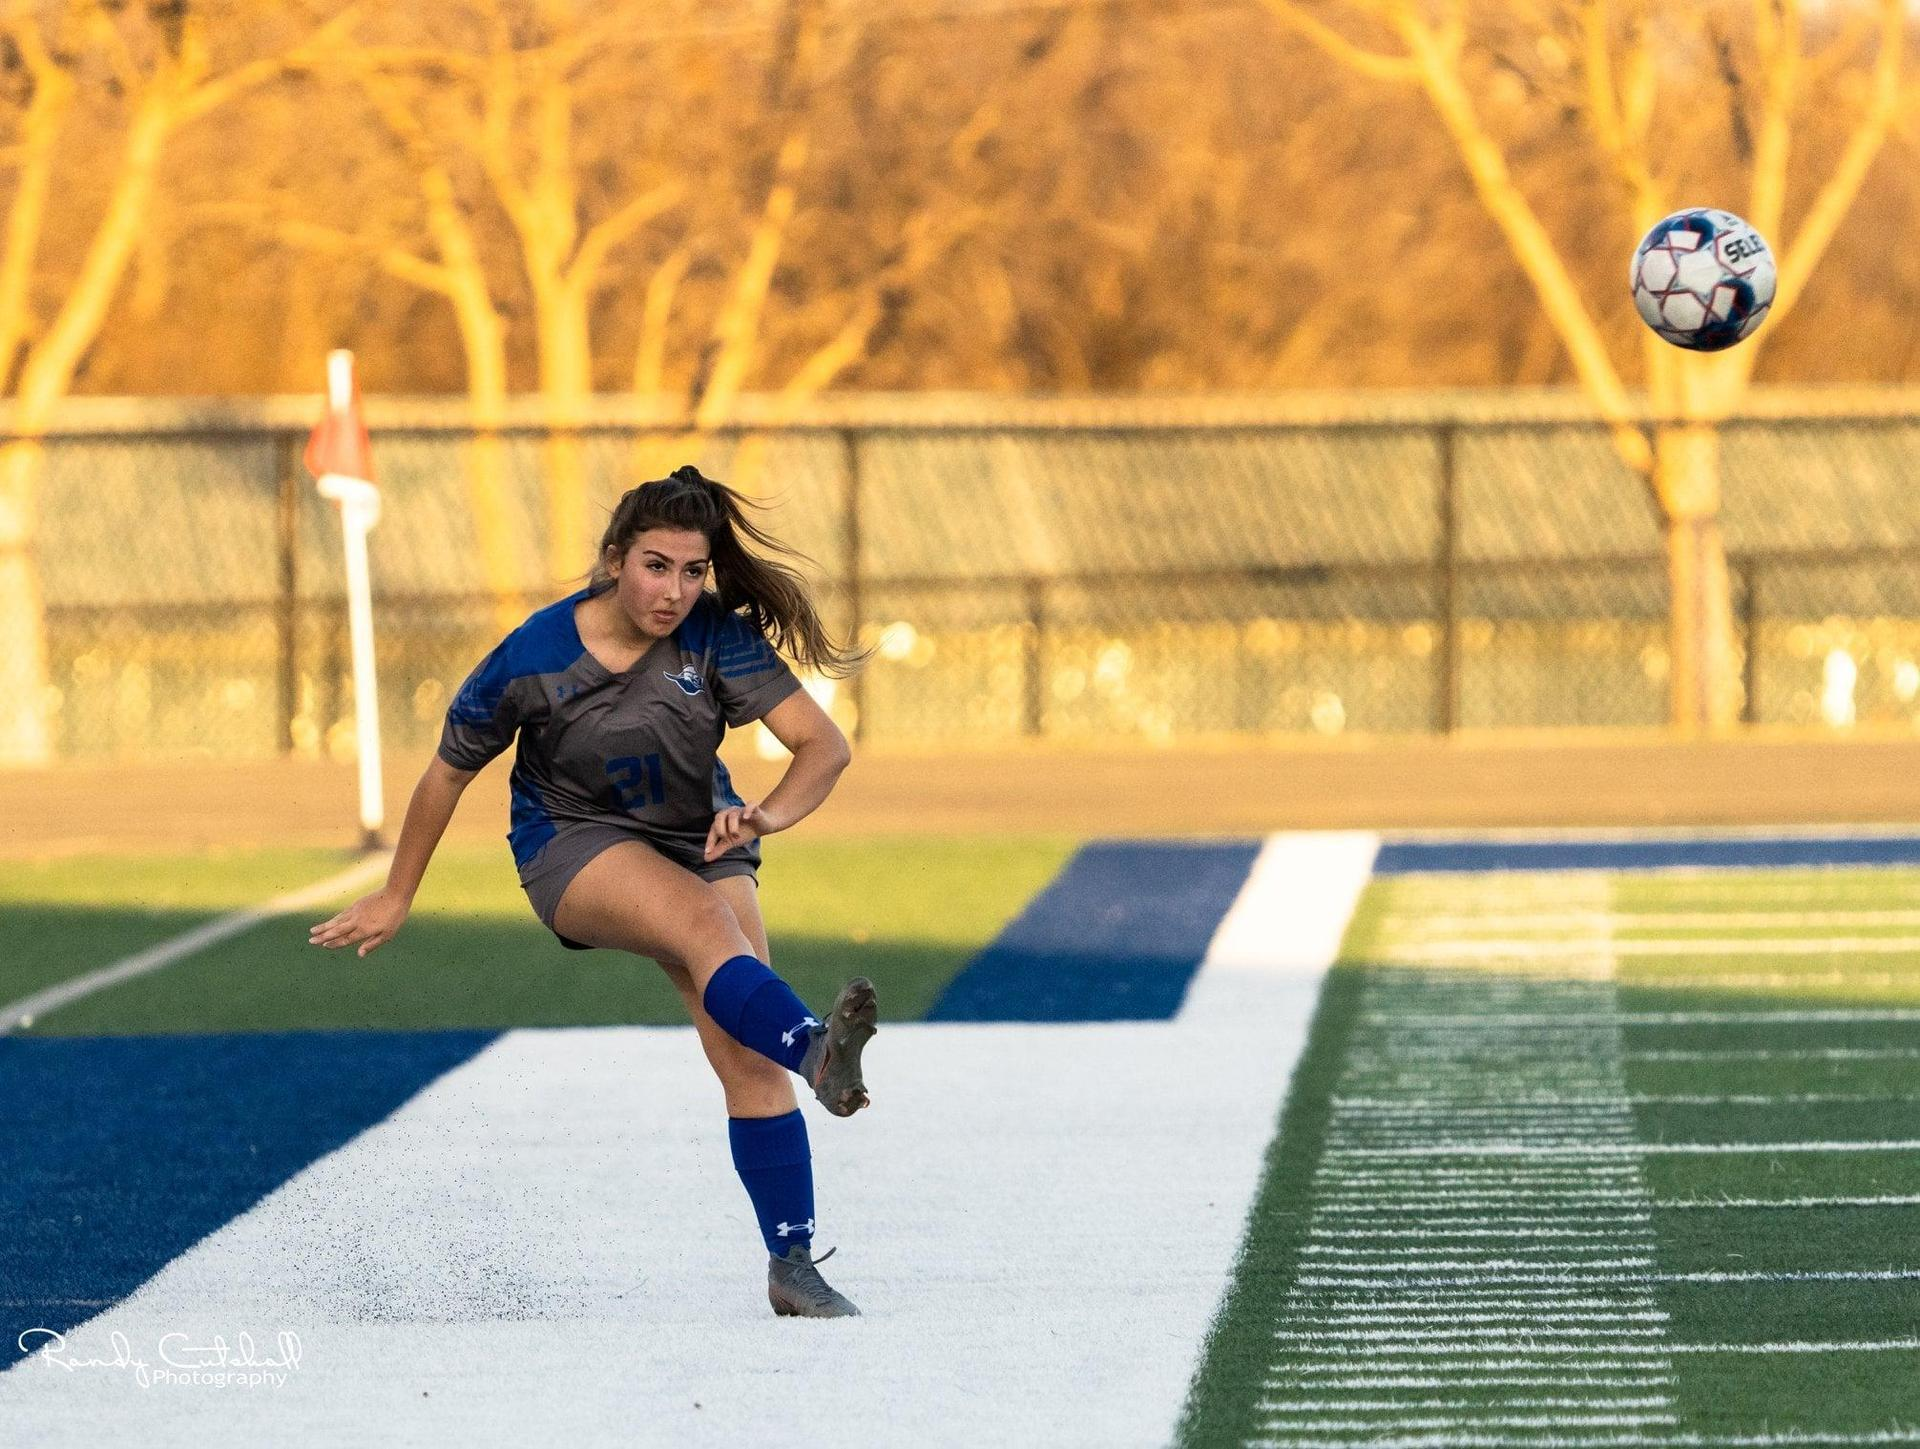 Lady Roos Soccer Player Kicking the Ball